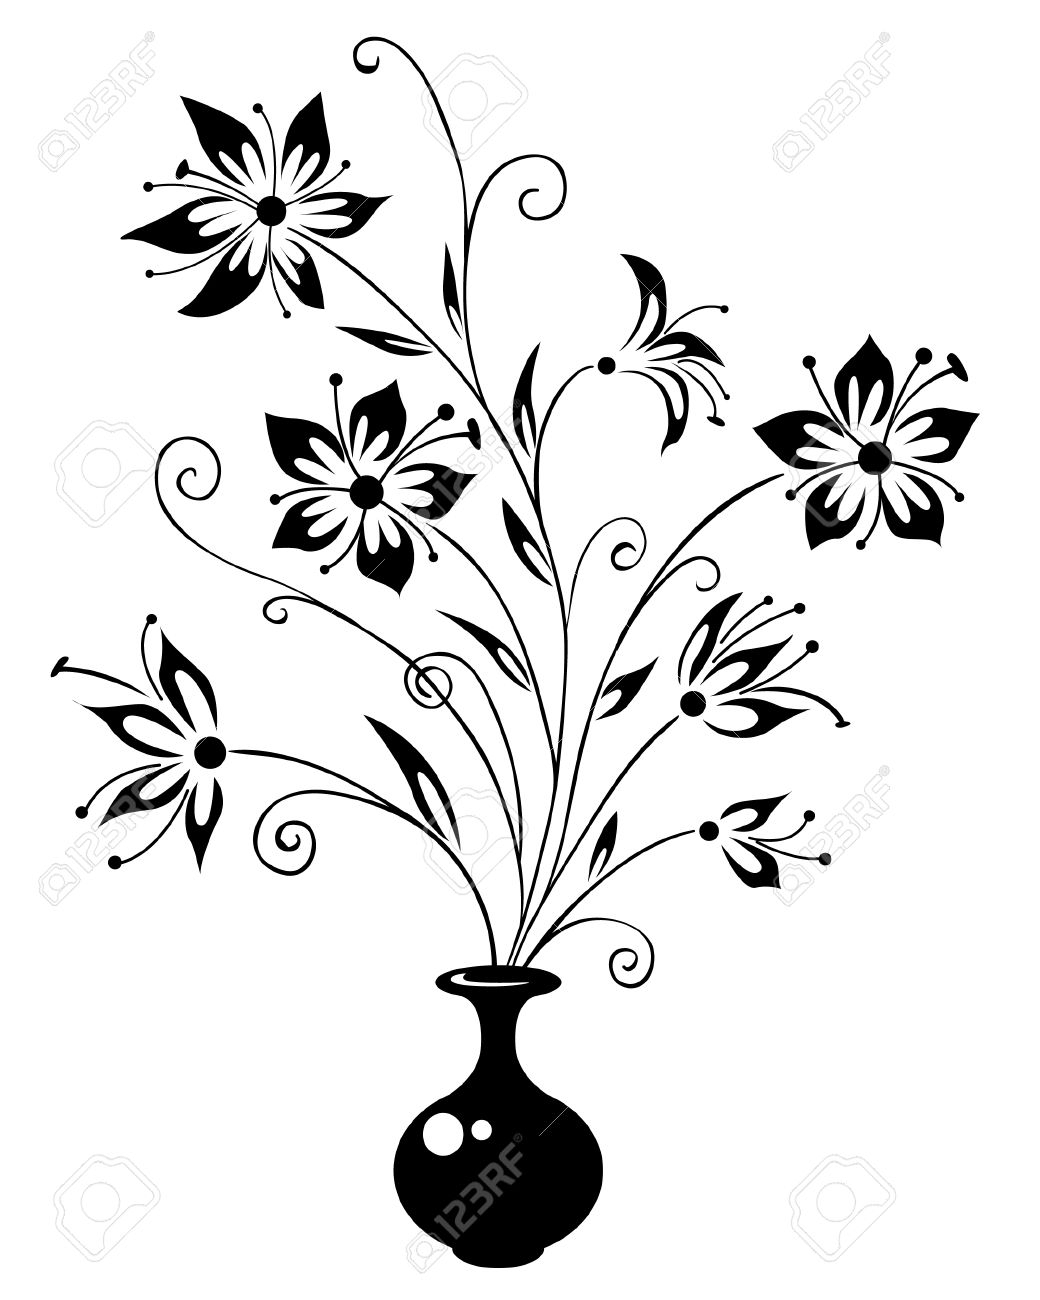 Vase clipart drawn flower. Pencil drawing glass with